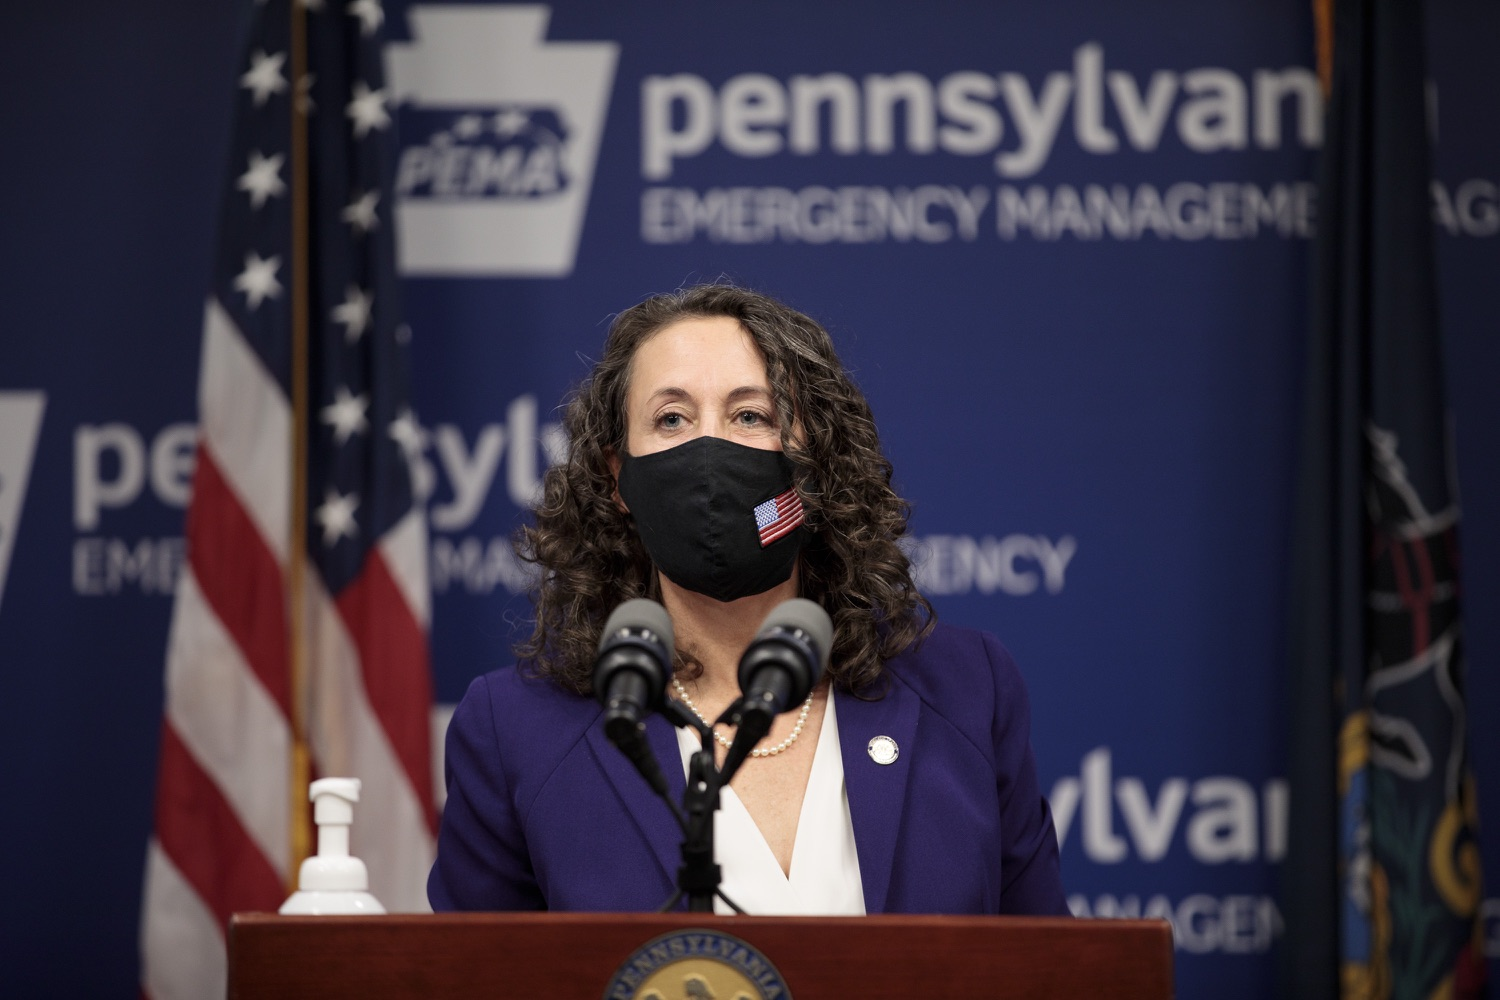 """<a href=""""https://filesource.wostreaming.net/commonwealthofpa/photo/18465_gov_electoralCollege_dz_15.jpg"""" target=""""_blank"""">⇣Download Photo<br></a>Secretary of the Commonwealth of Pennsylvania Kathy Boockvar speaking at the press conference.  With Congress preparing to count Electoral College votes today, Governor Tom Wolf was joined by Secretary of State Kathy Boockvar and Philadelphia City Commissioner Al Schmidt to emphasize that Pennsylvania had a free, fair and secure election. All efforts by Congressional Republicans to overthrow the election results and subvert the will of the voters are disgraceful and must be rejected. Harrisburg, PA  January 6, 2021"""